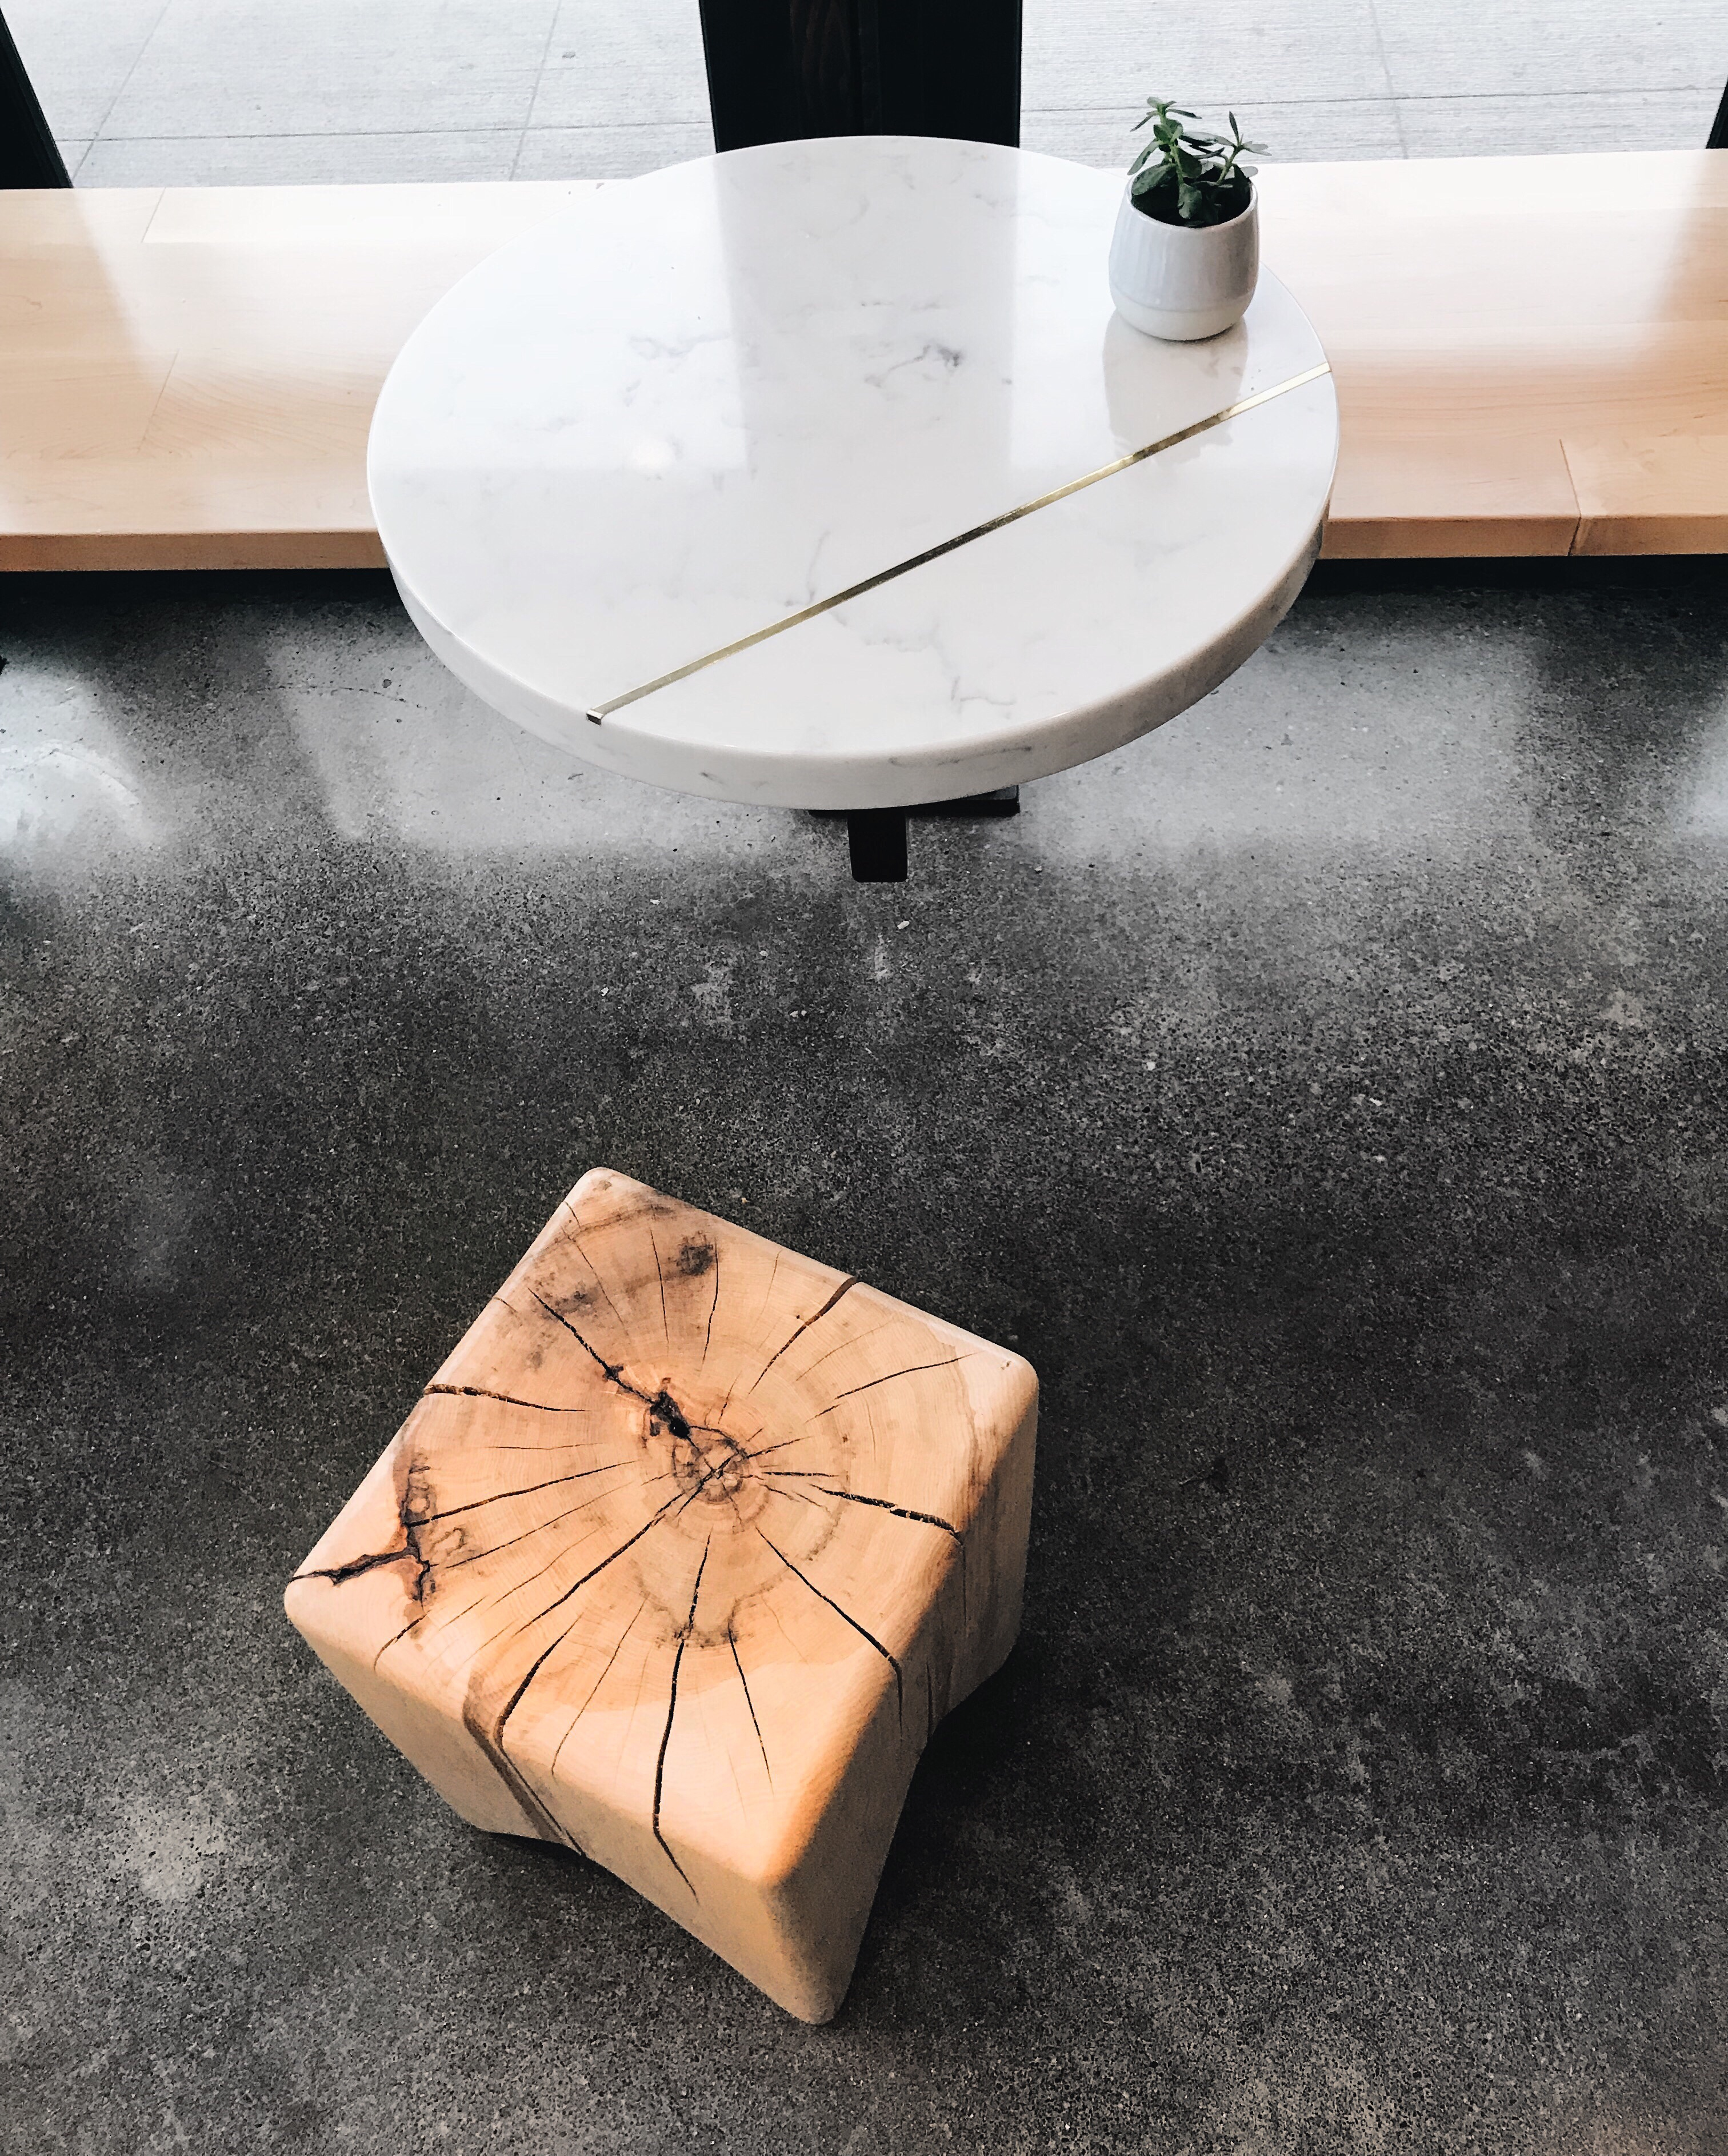 Custom quartz tables and wood stools at Olympia Coffee Roasters | beccarisaluna.com